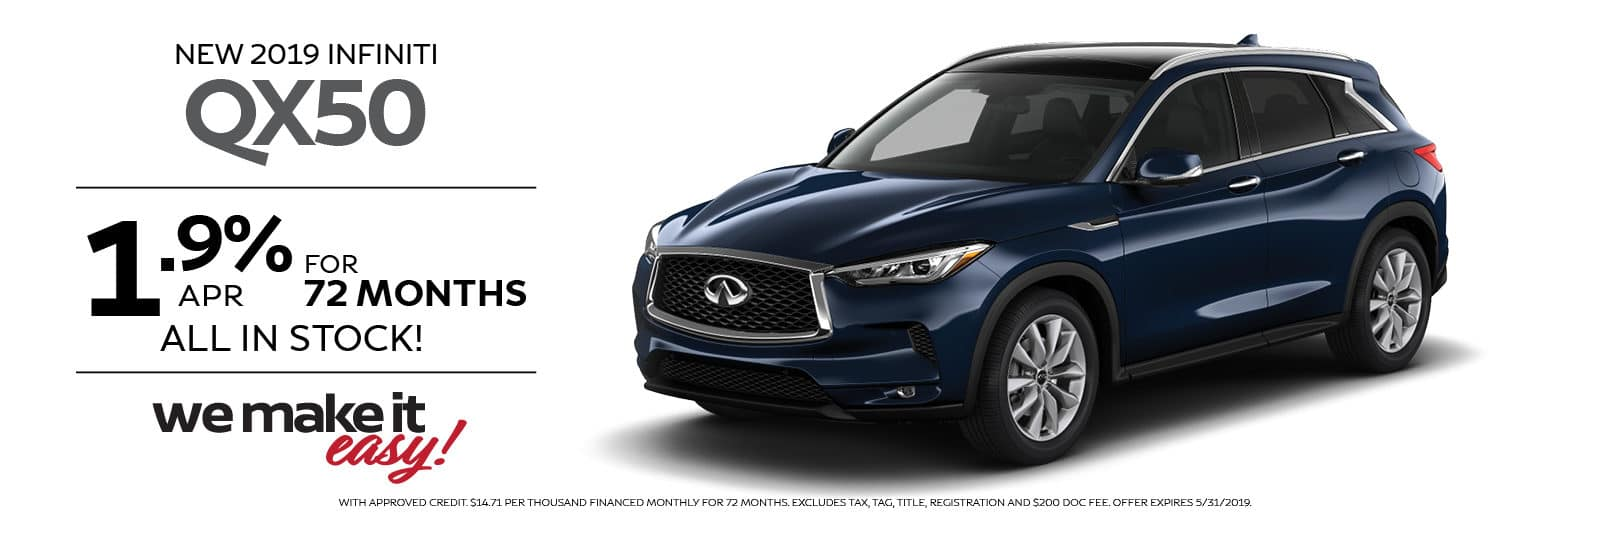 RAY BRANDT INFINITI QX50 SPECIAL